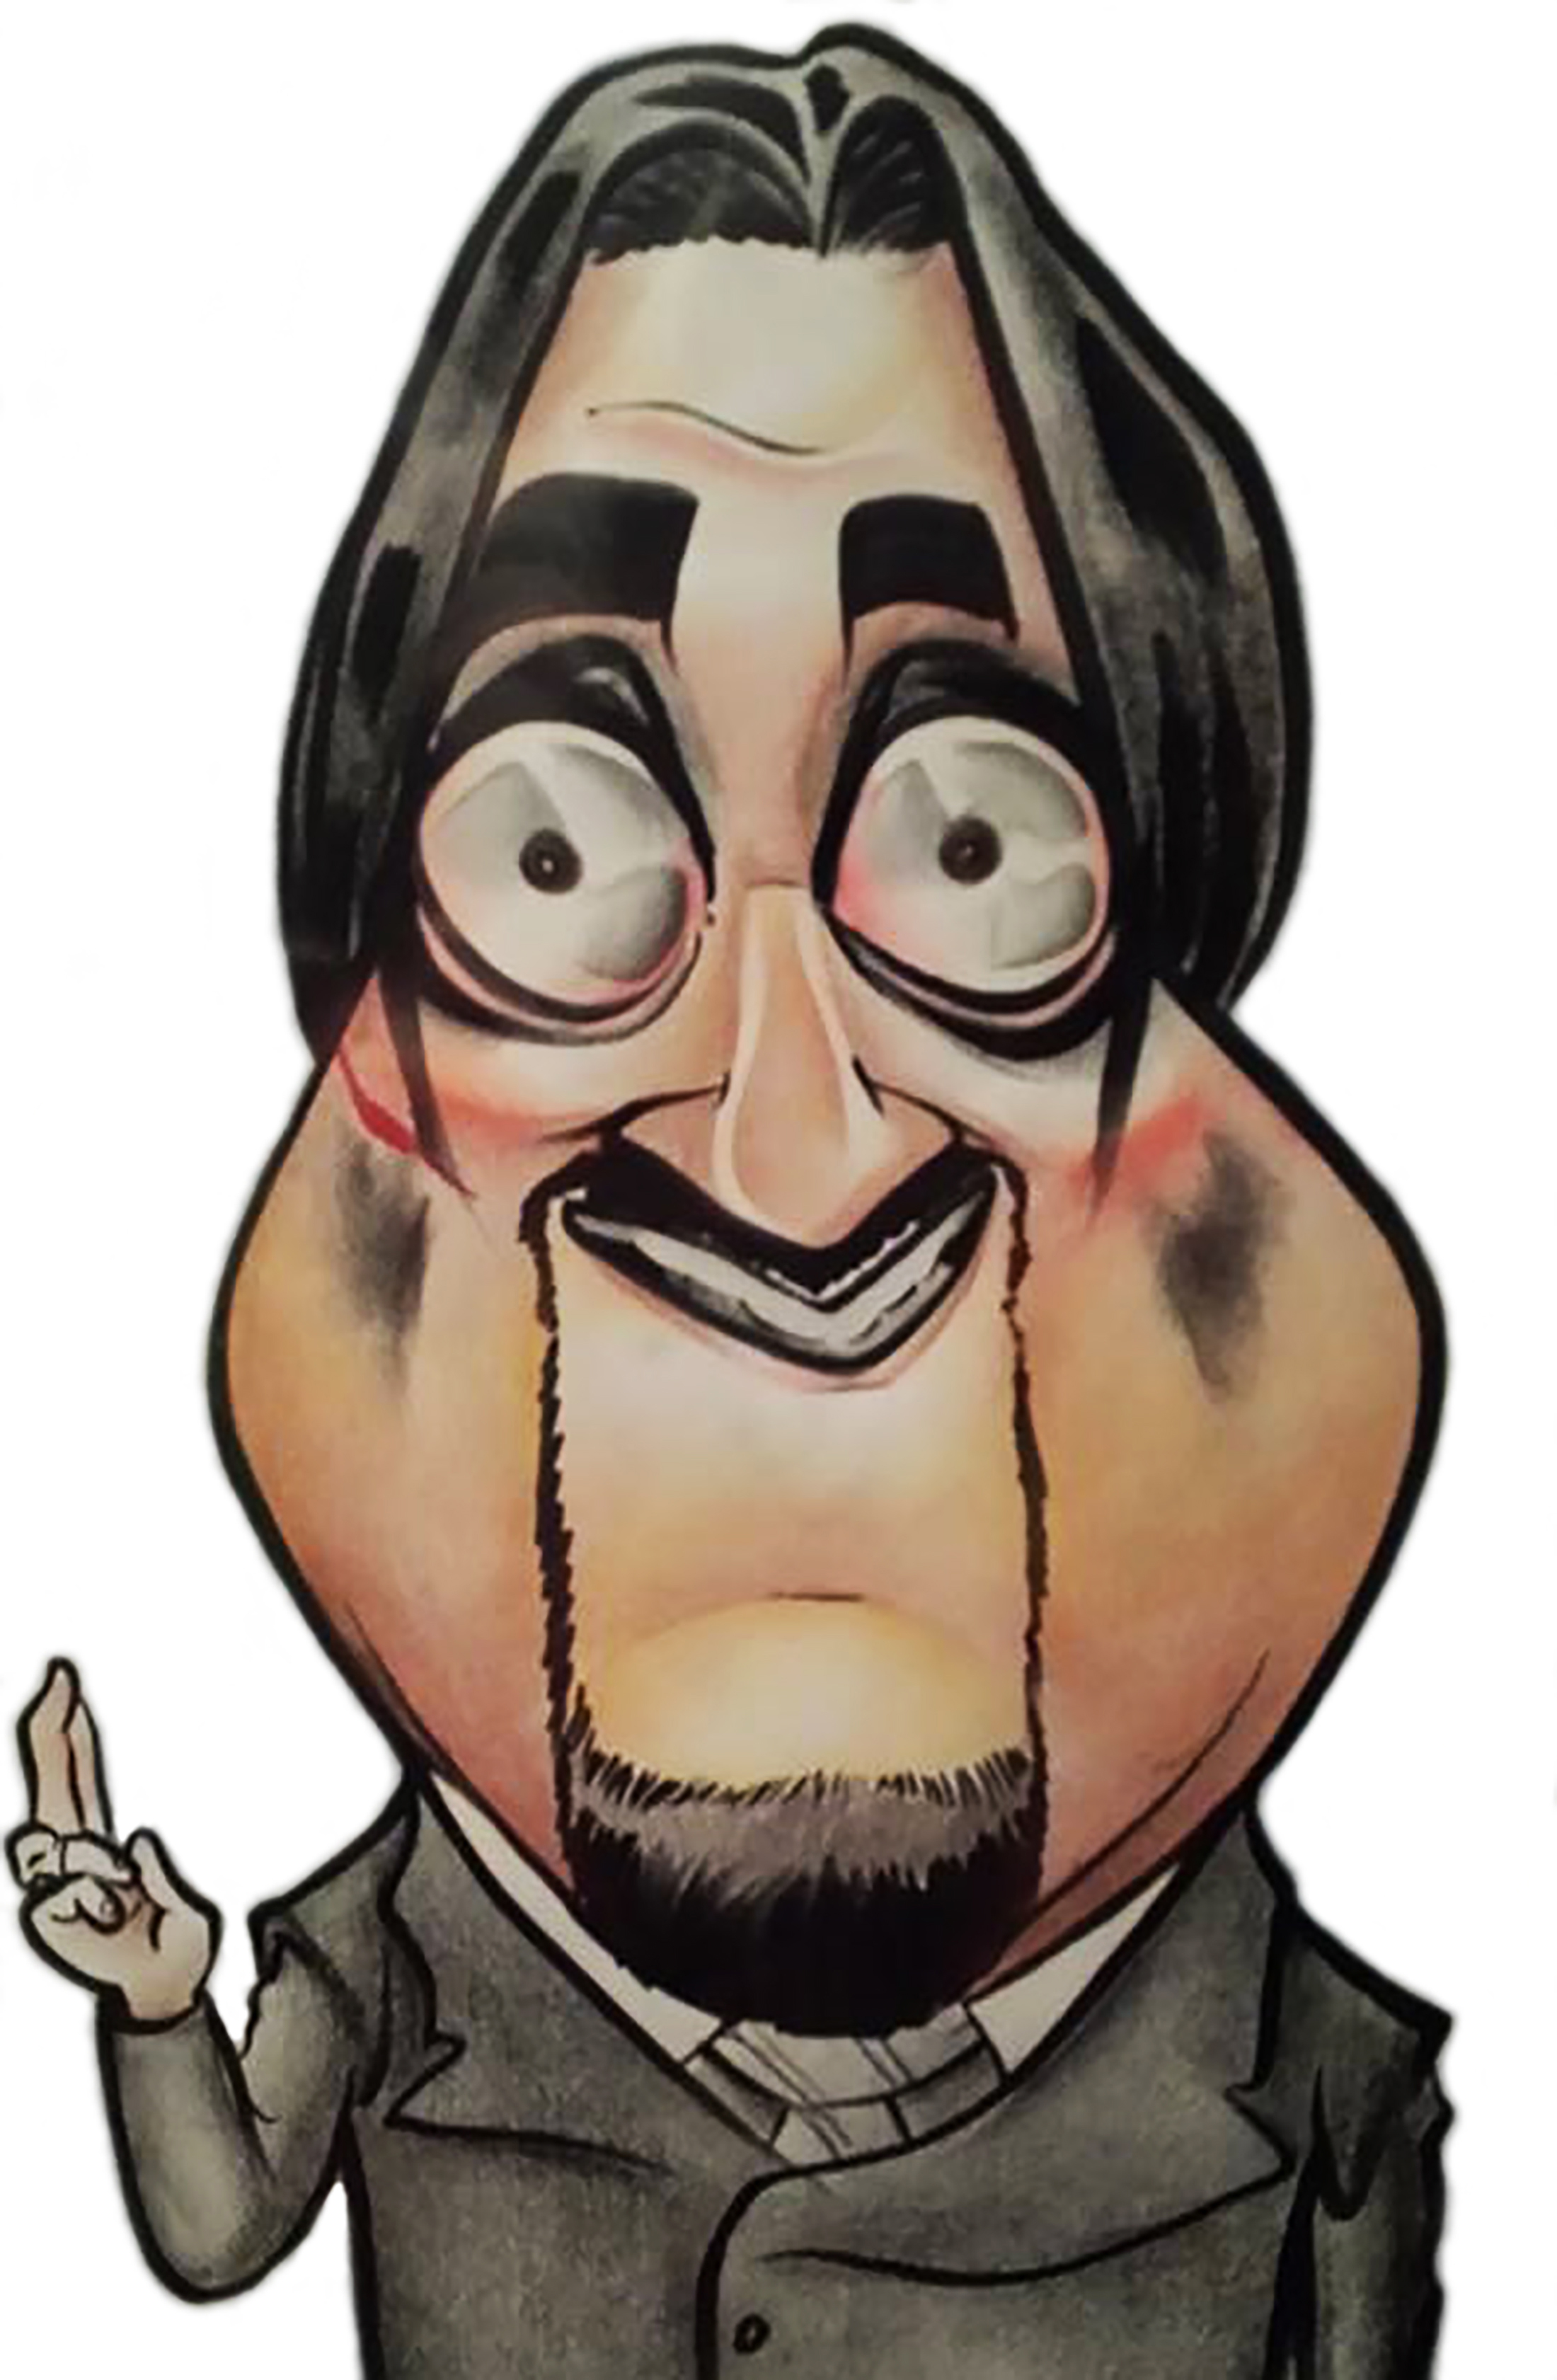 Dr. Paul Bearer cartoon